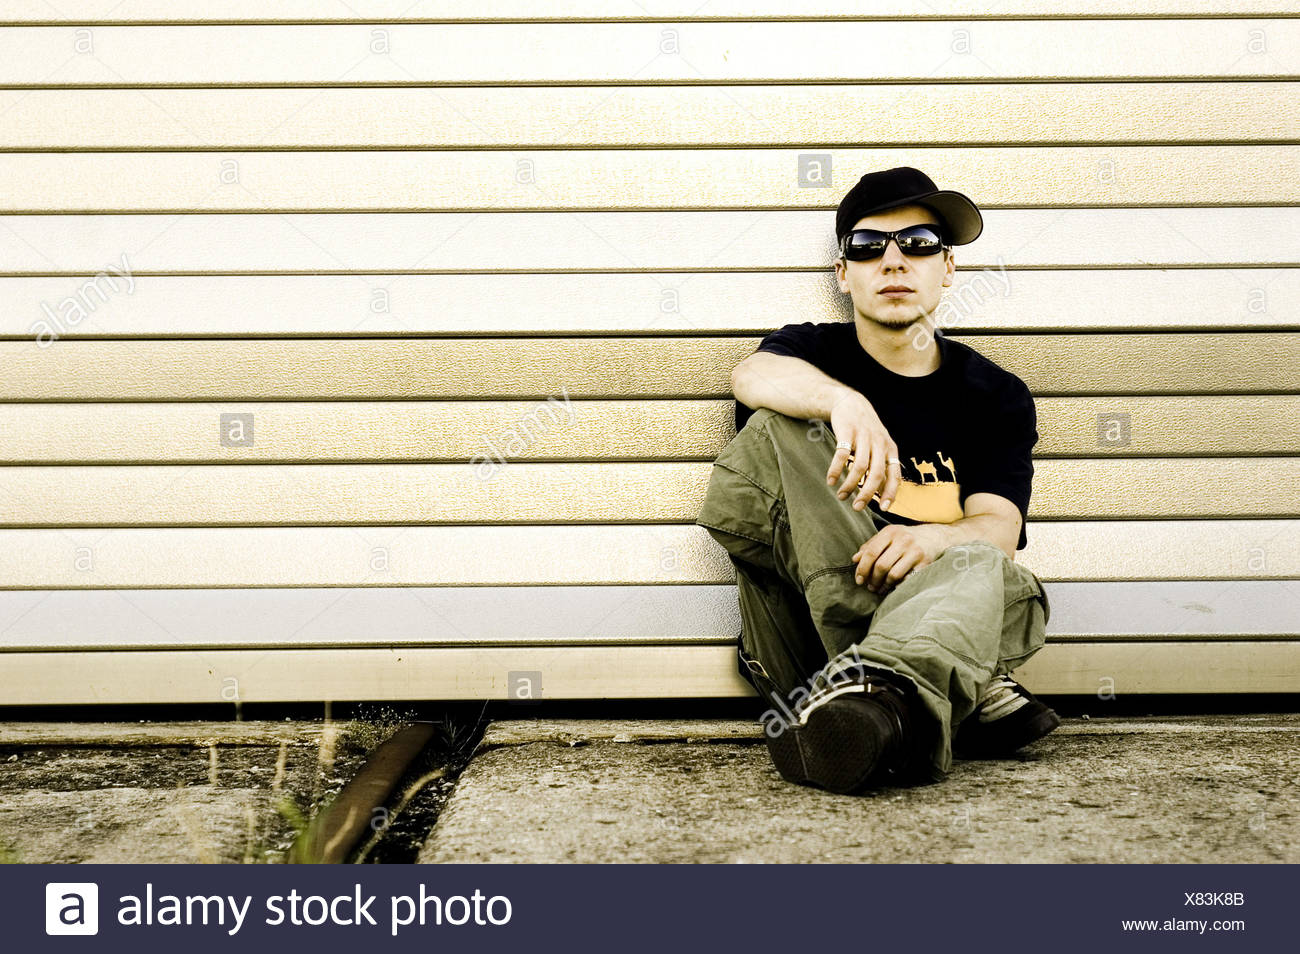 adolescent,youth culture - Stock Image